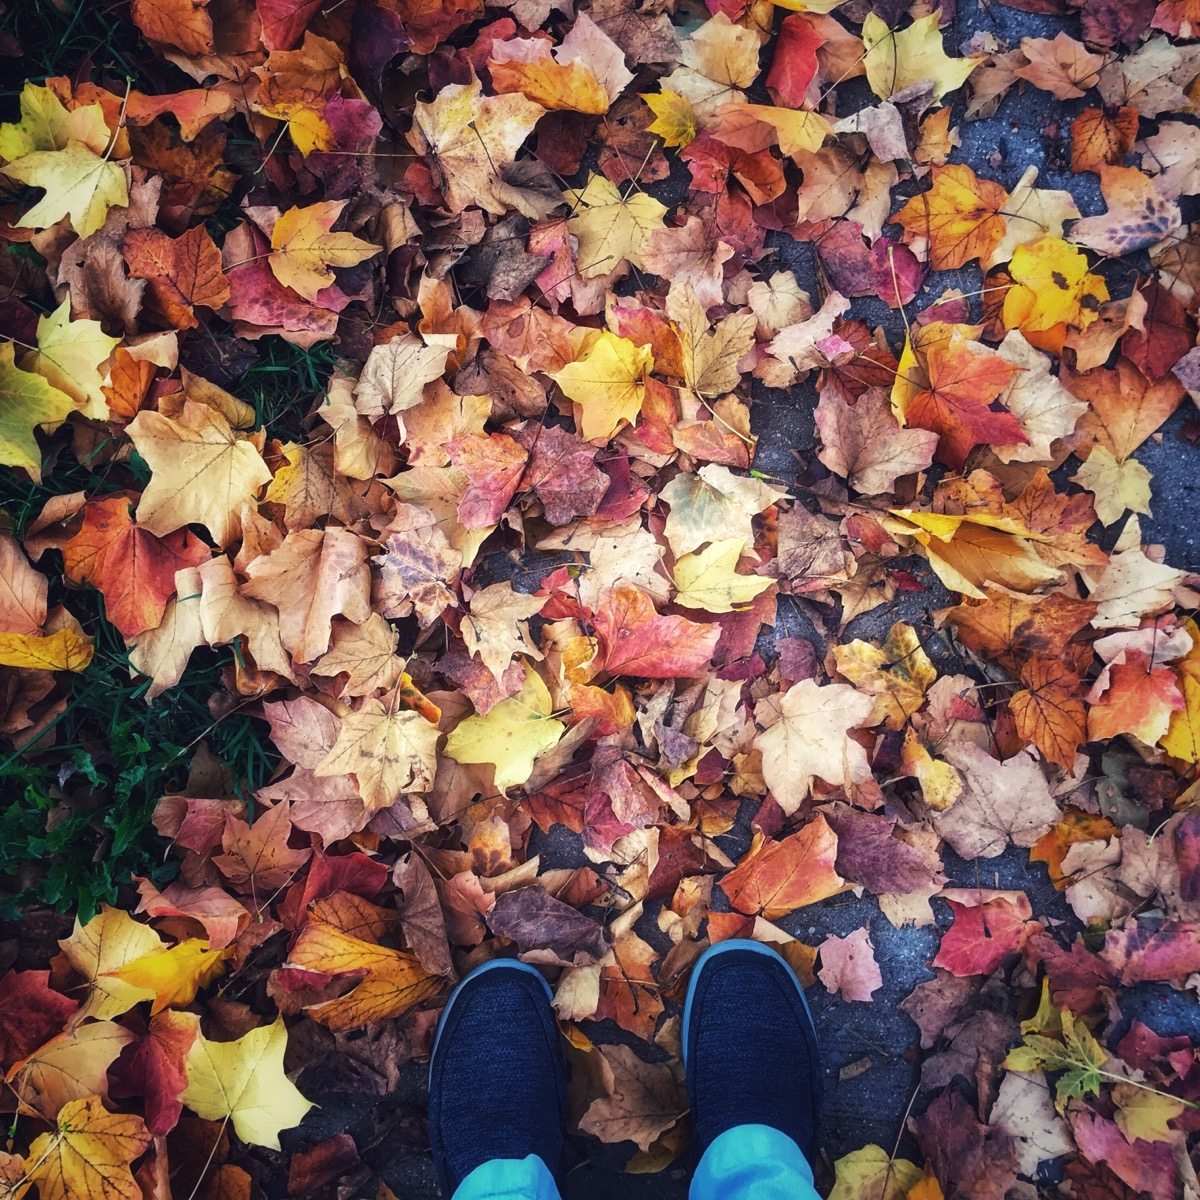 Pile of leaves at feet